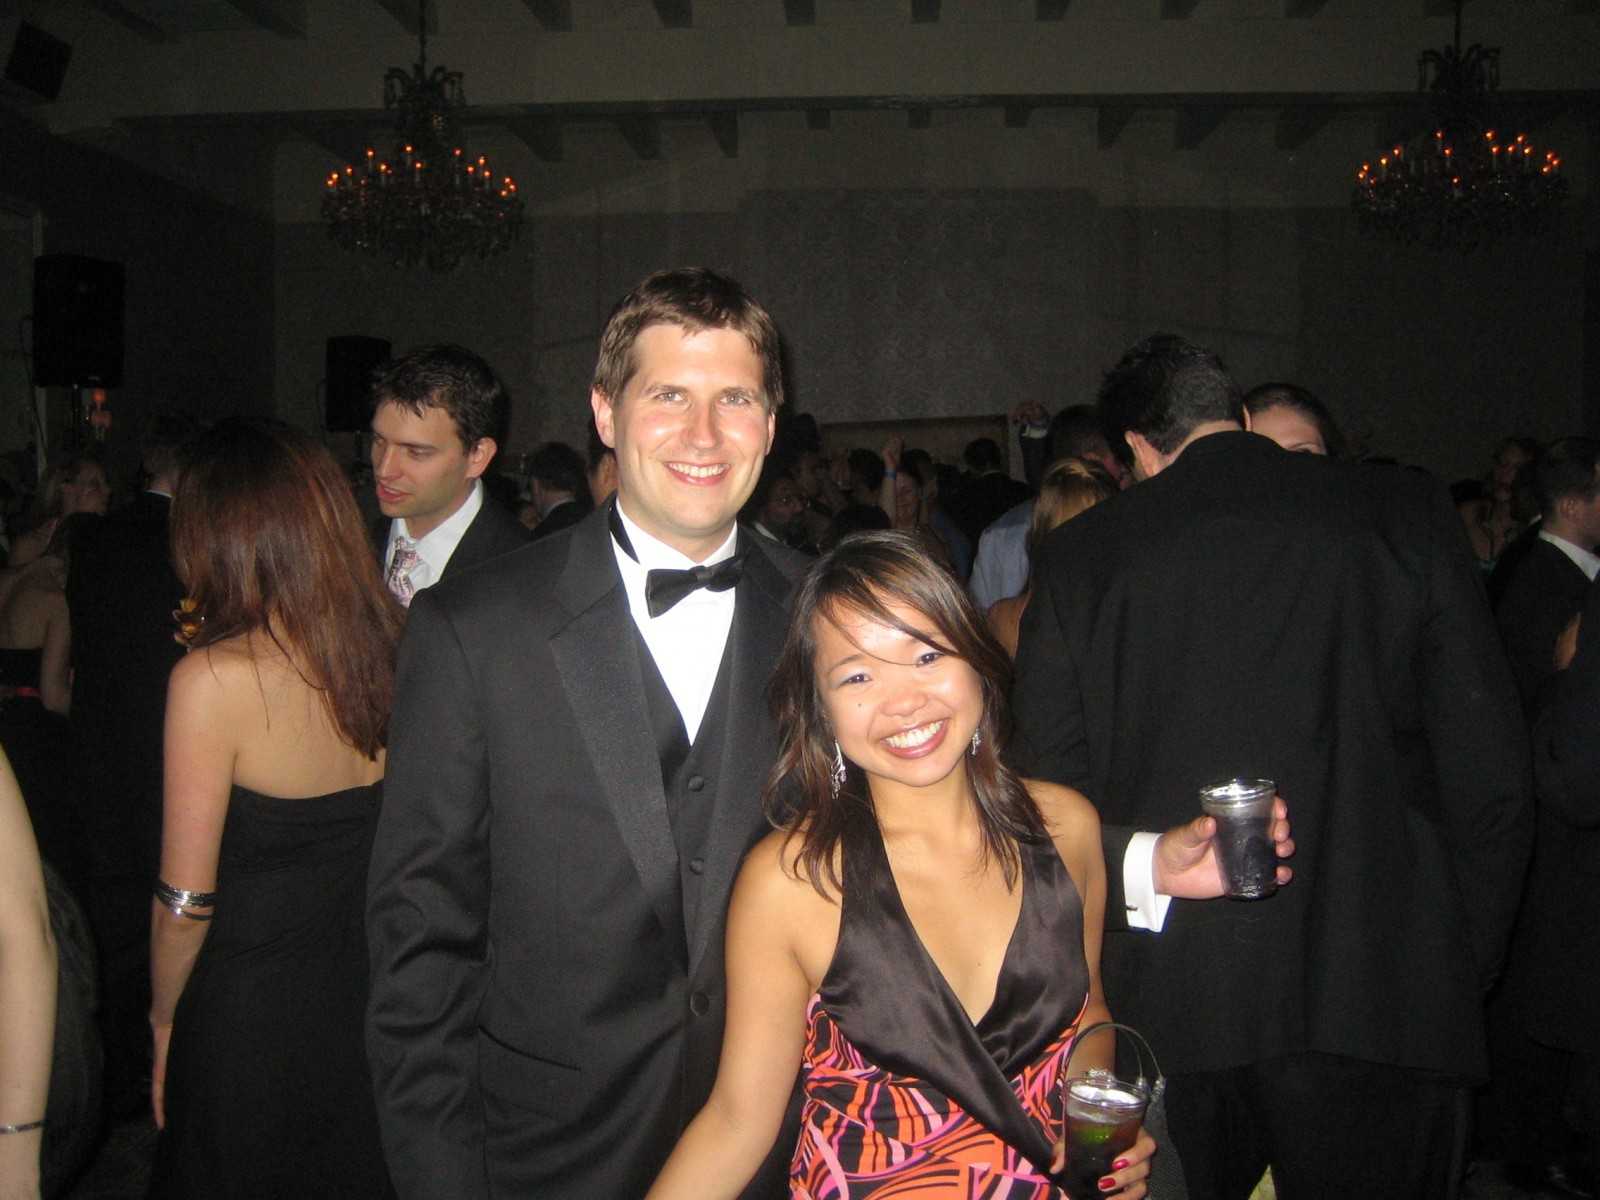 Business school prom, 2006